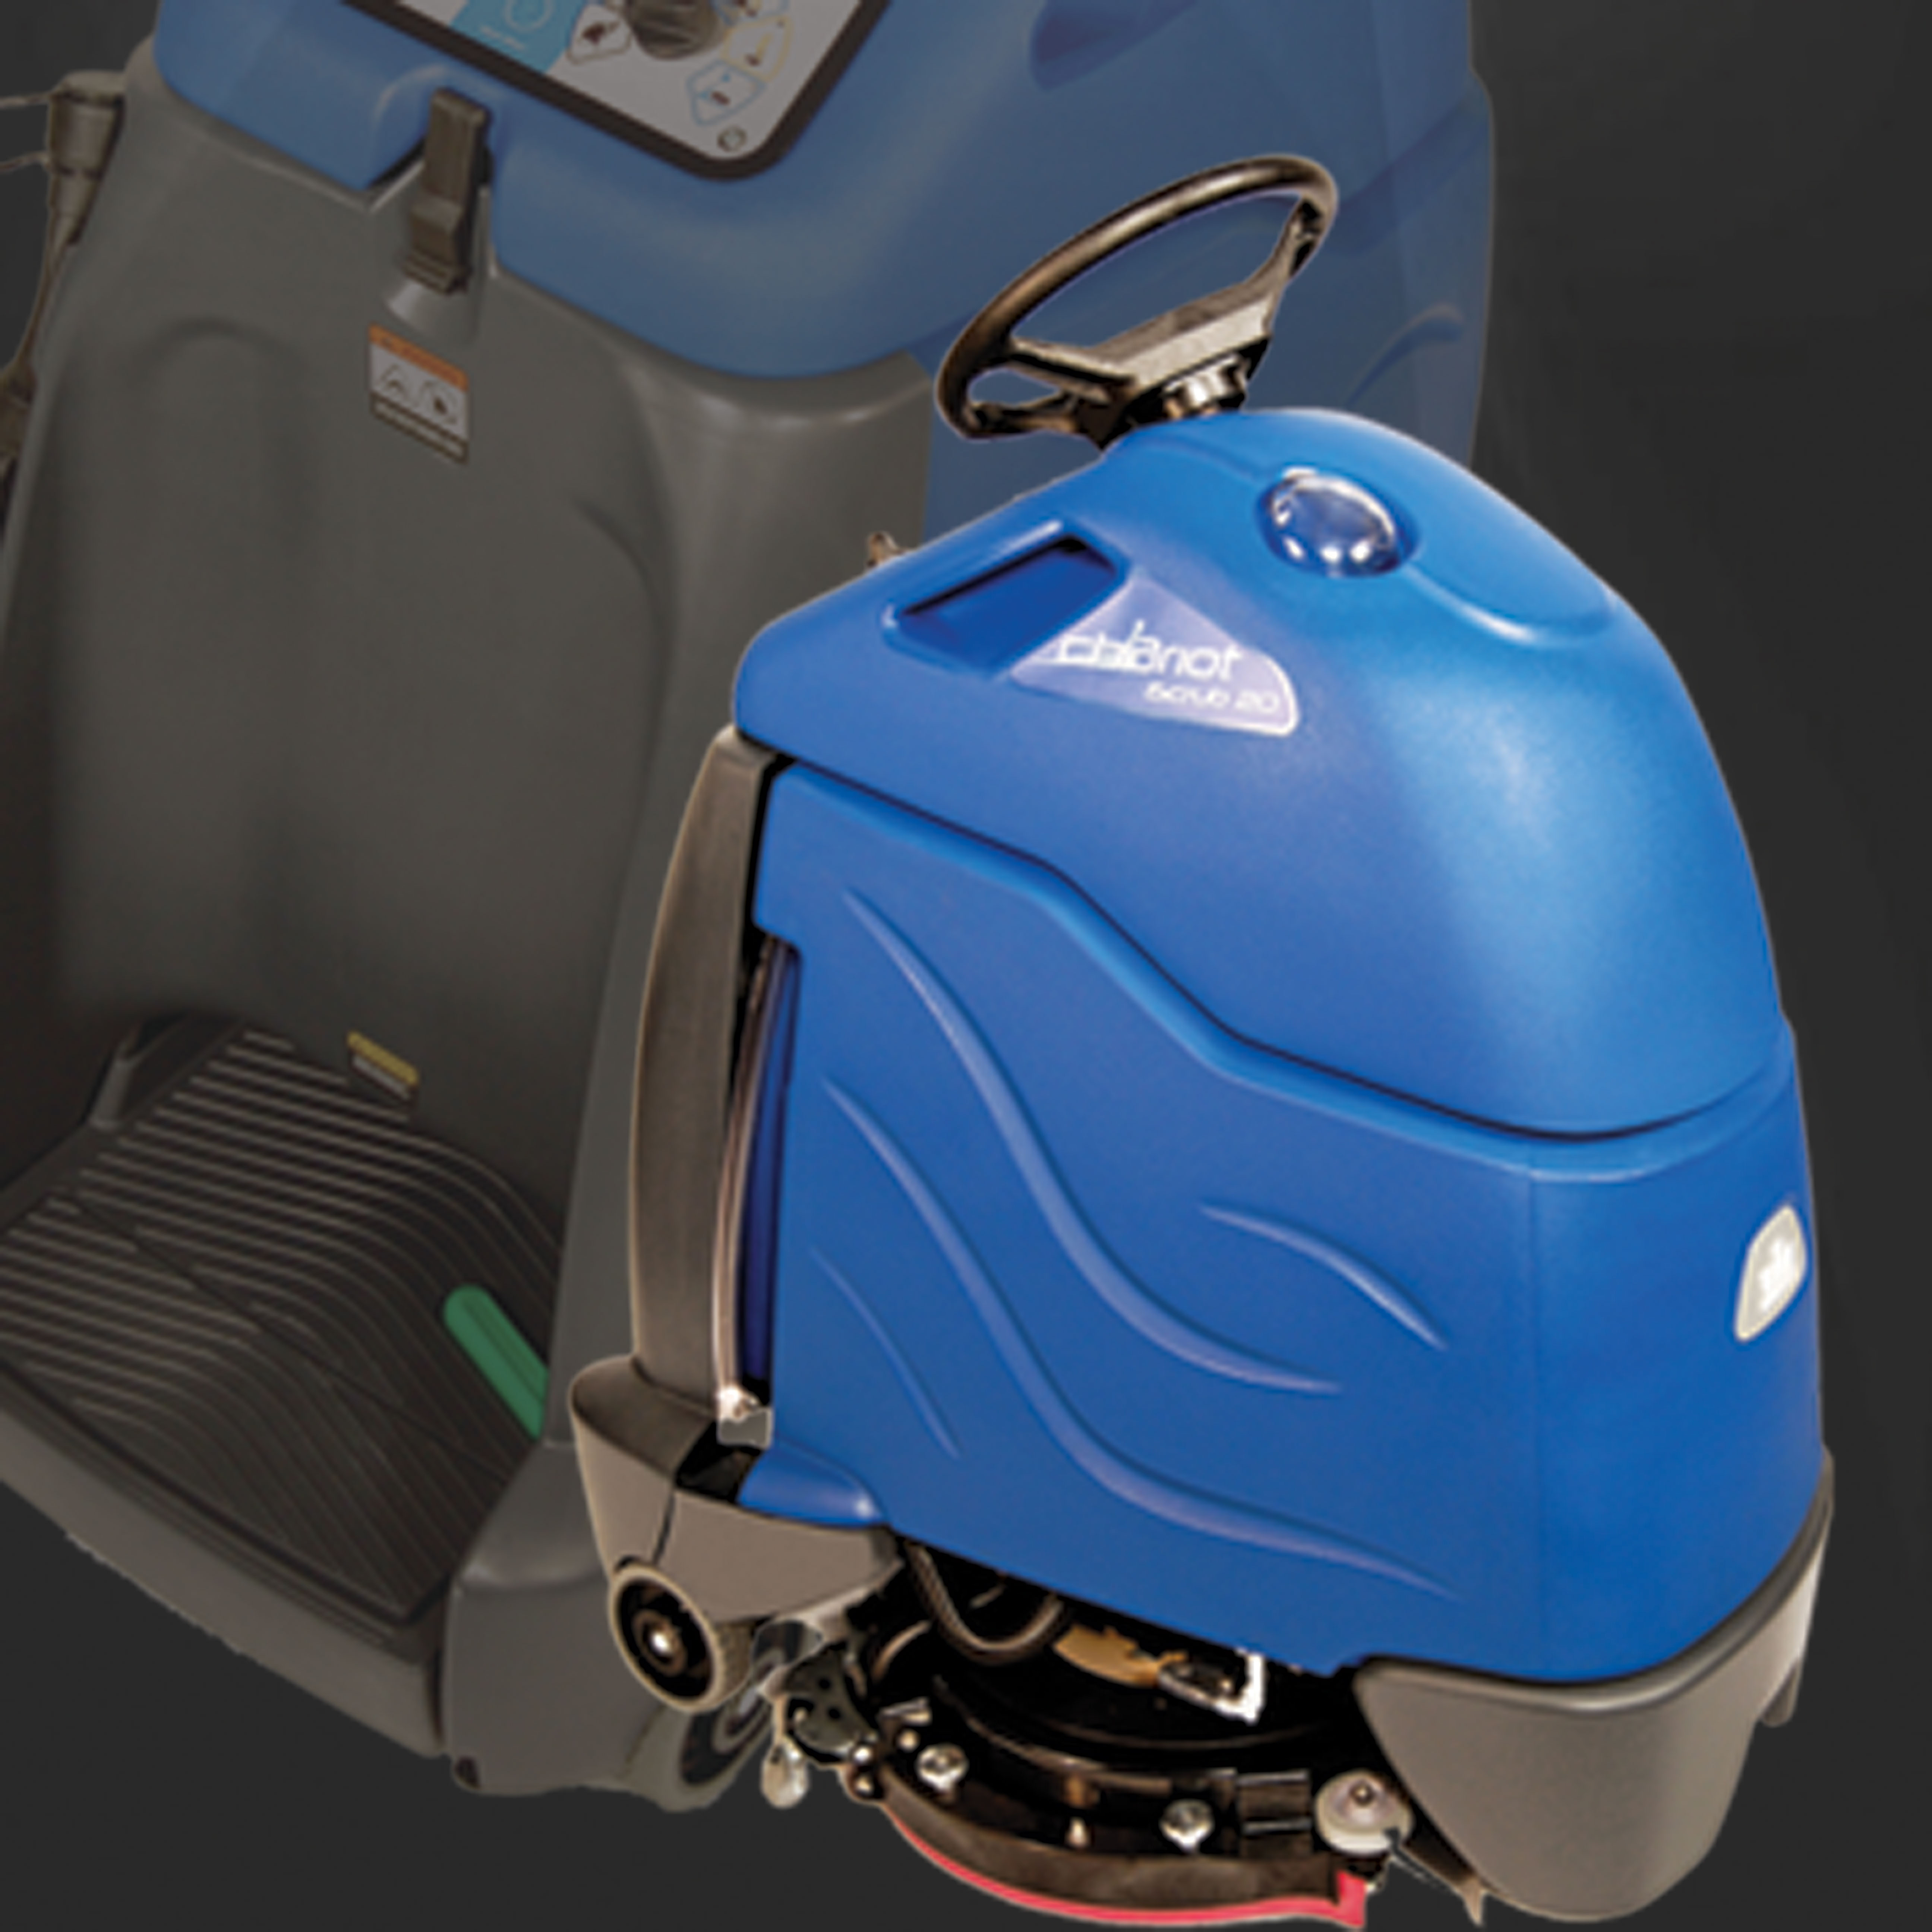 Stand-on floor scrubber